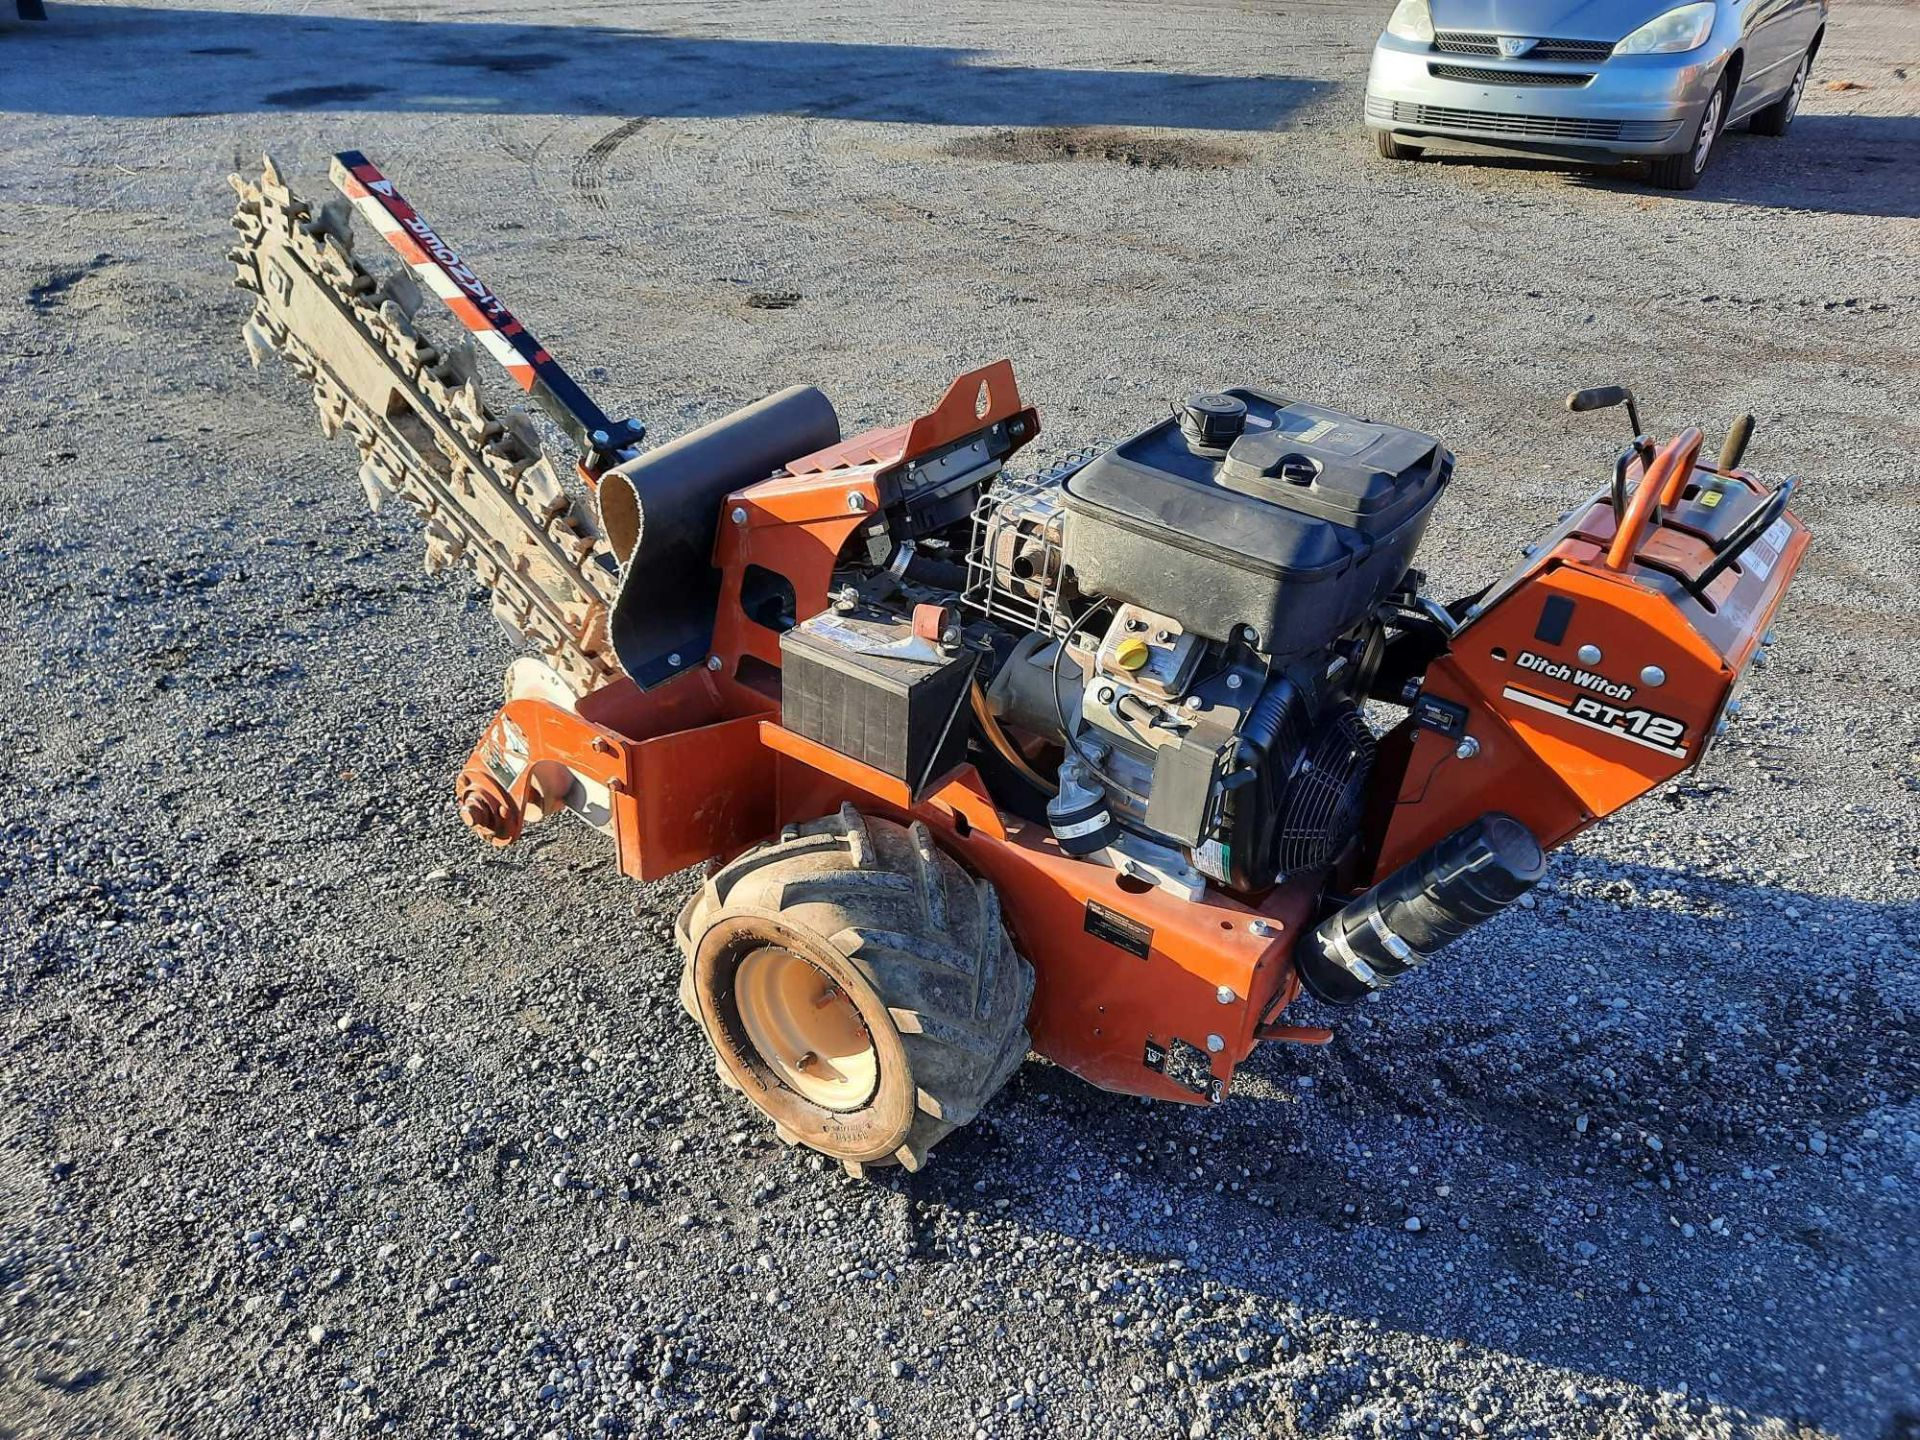 2012 DITCH WITCH RT12 WALK BEHIND TRENCHER - Image 4 of 11